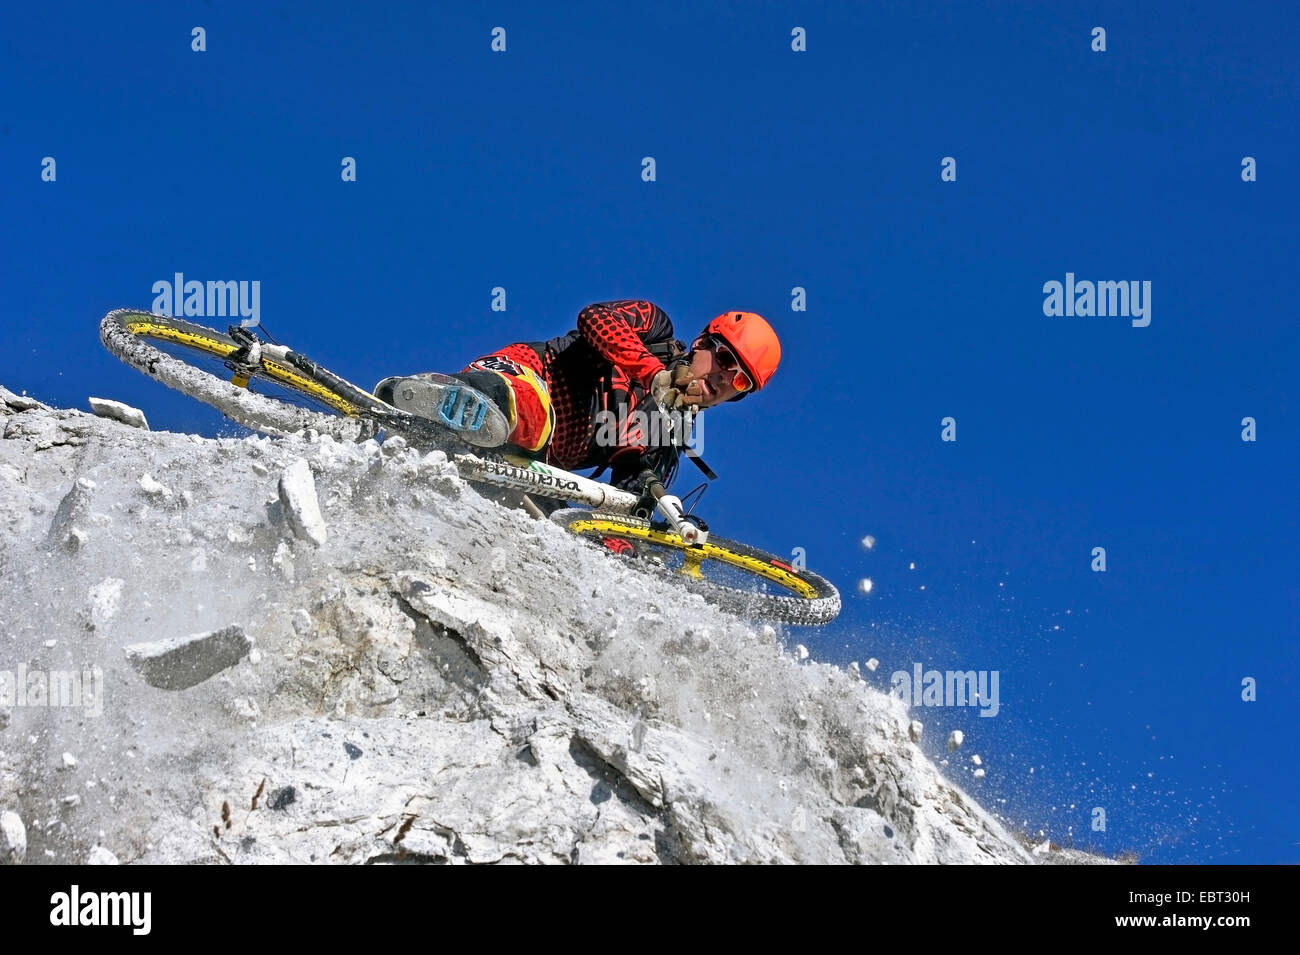 daring mountain biker stopping at a rocky abyss, France, Savoie - Stock Image